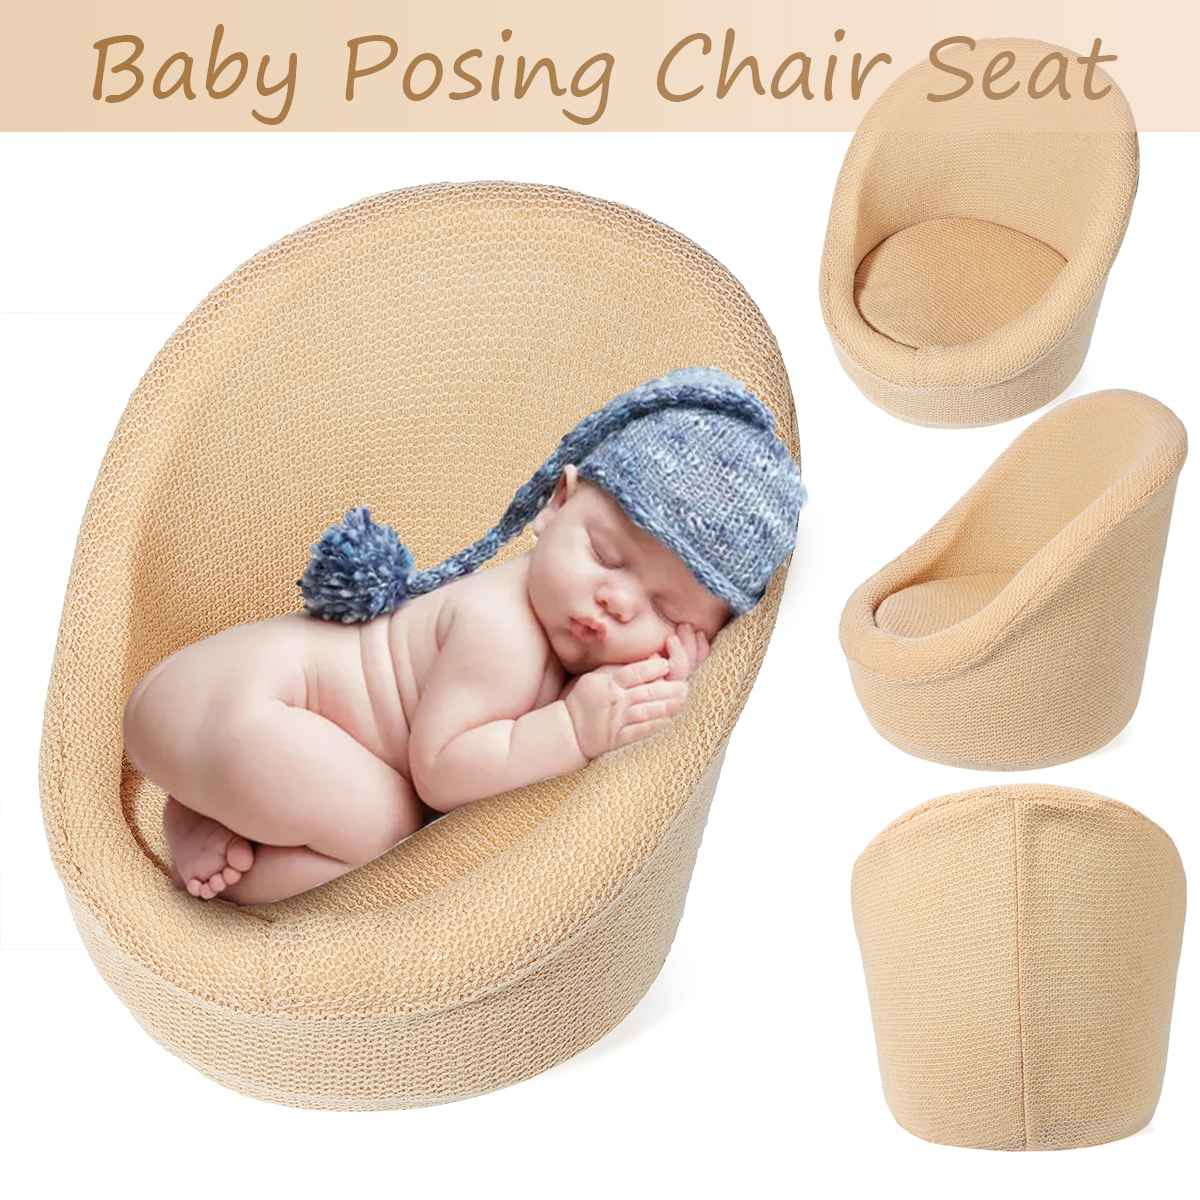 Baby Posing Chair Seat Photography Props Baby Sofa Infant Studio Shooing Kids Photo Accessories Small Sofa Children's Newborn